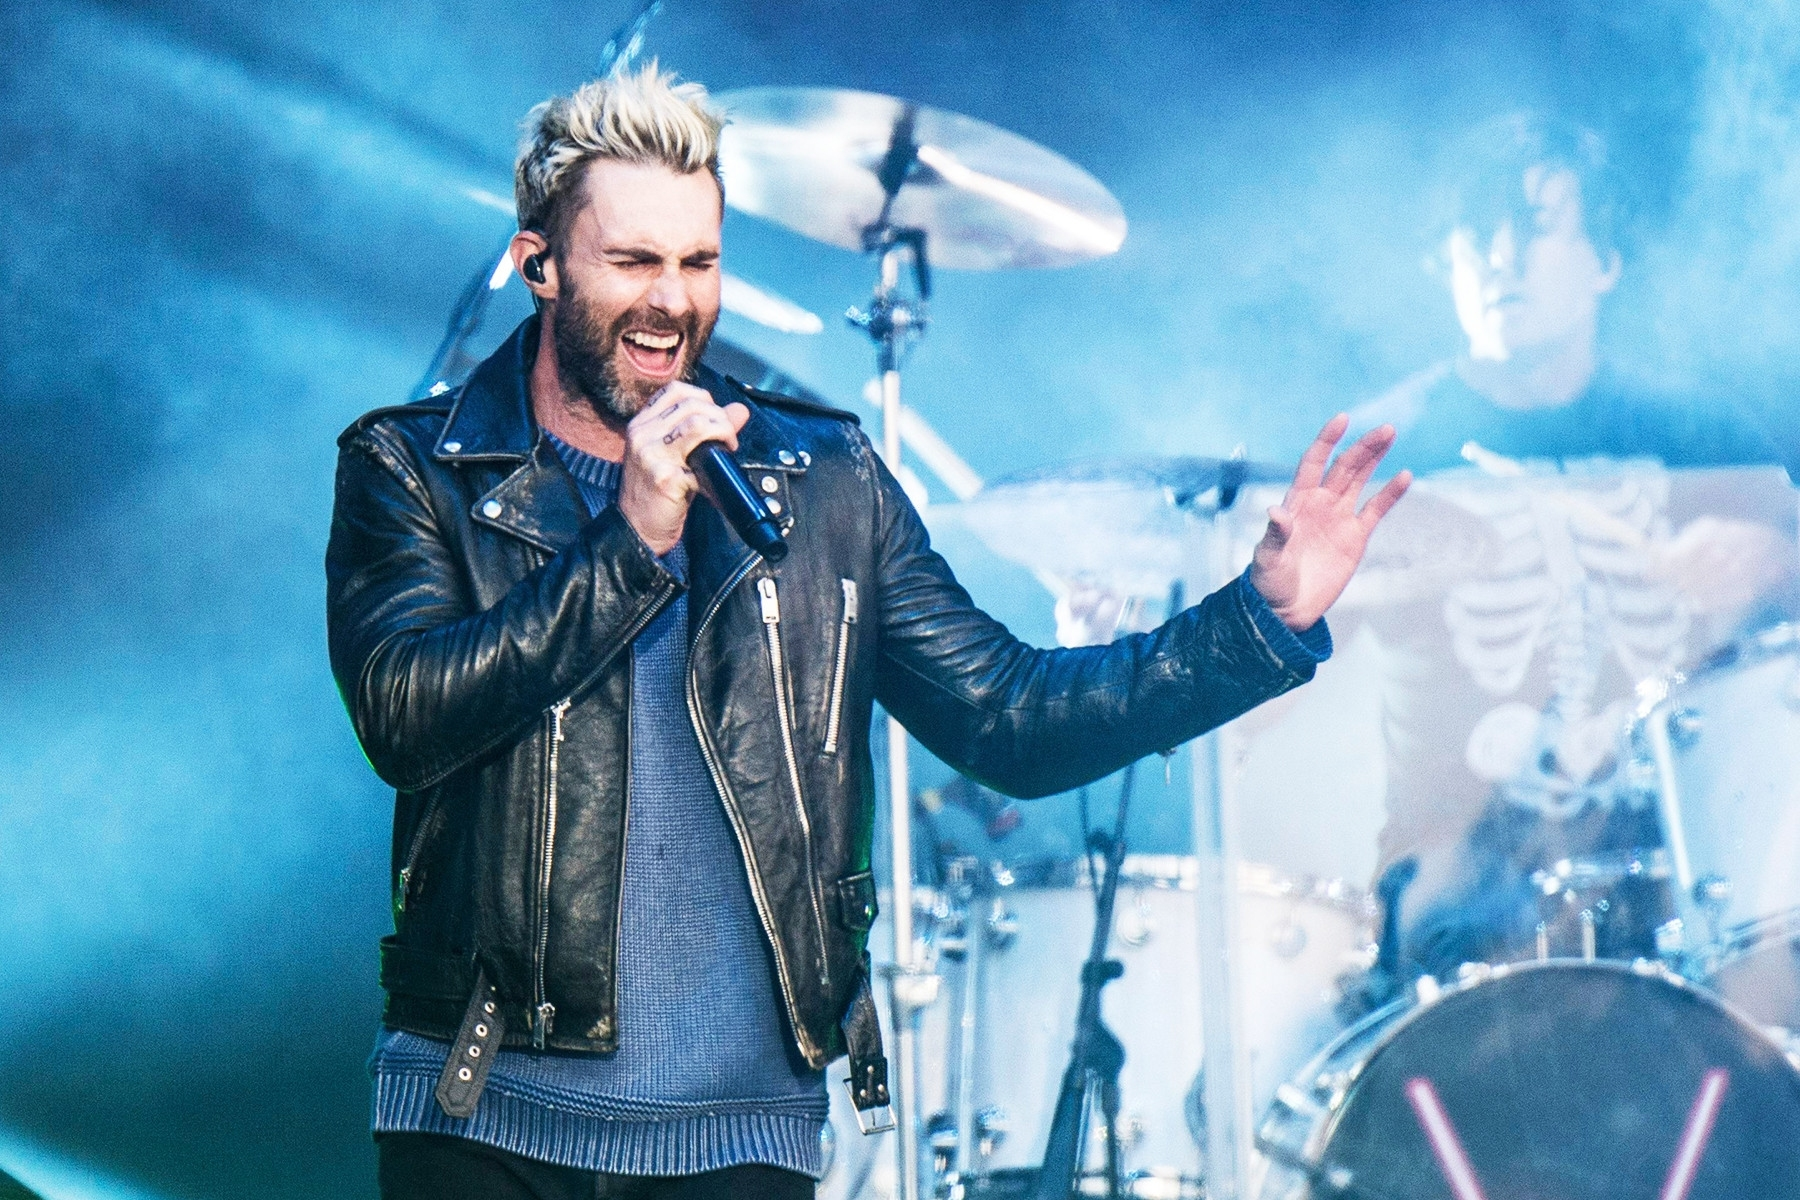 Maroon 5 Donates $500K In Response To Super Bowl Backlash intended for Maroon 5 Super Bowl 2019